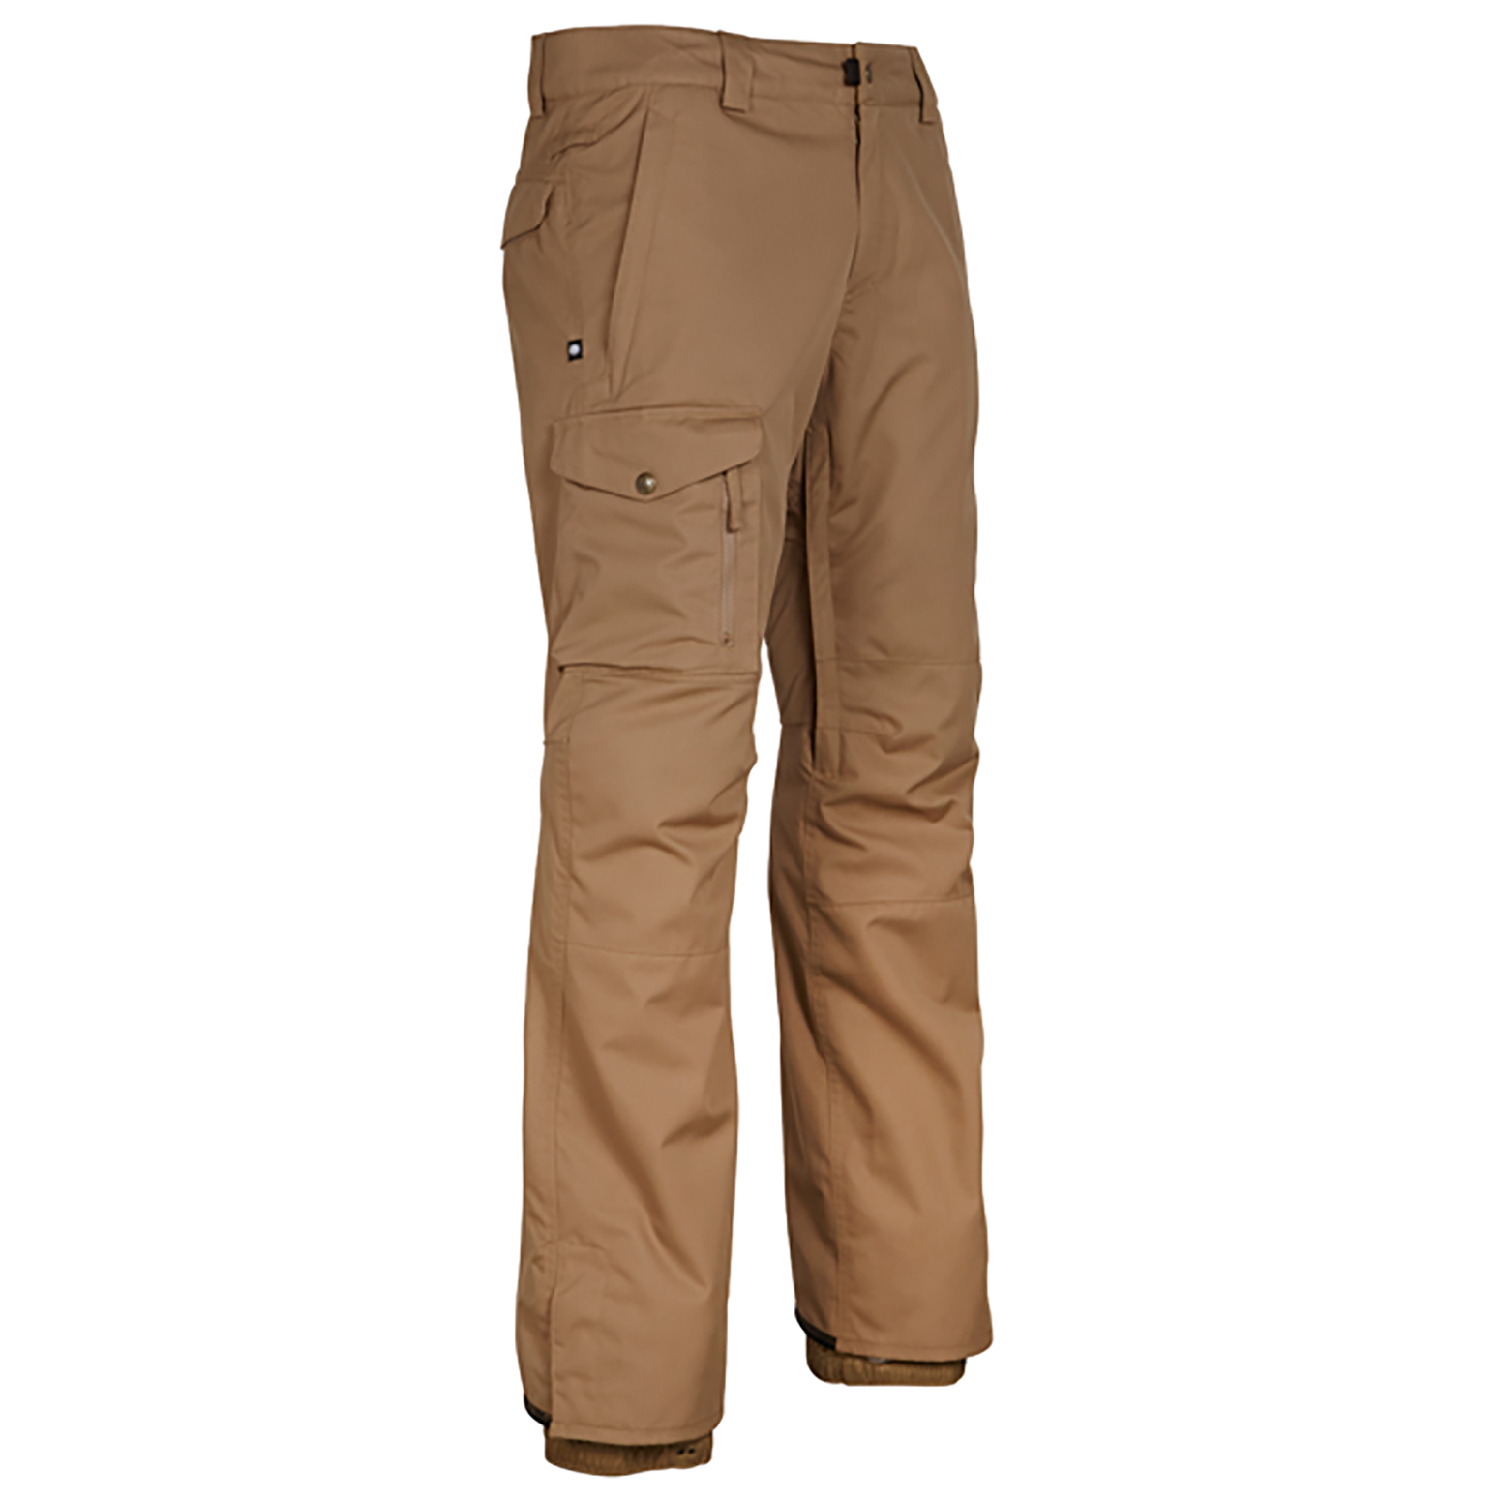 cdb33f2f8829 63% Off 686 2018 Rover (Khaki) Men s Snowboard Pants